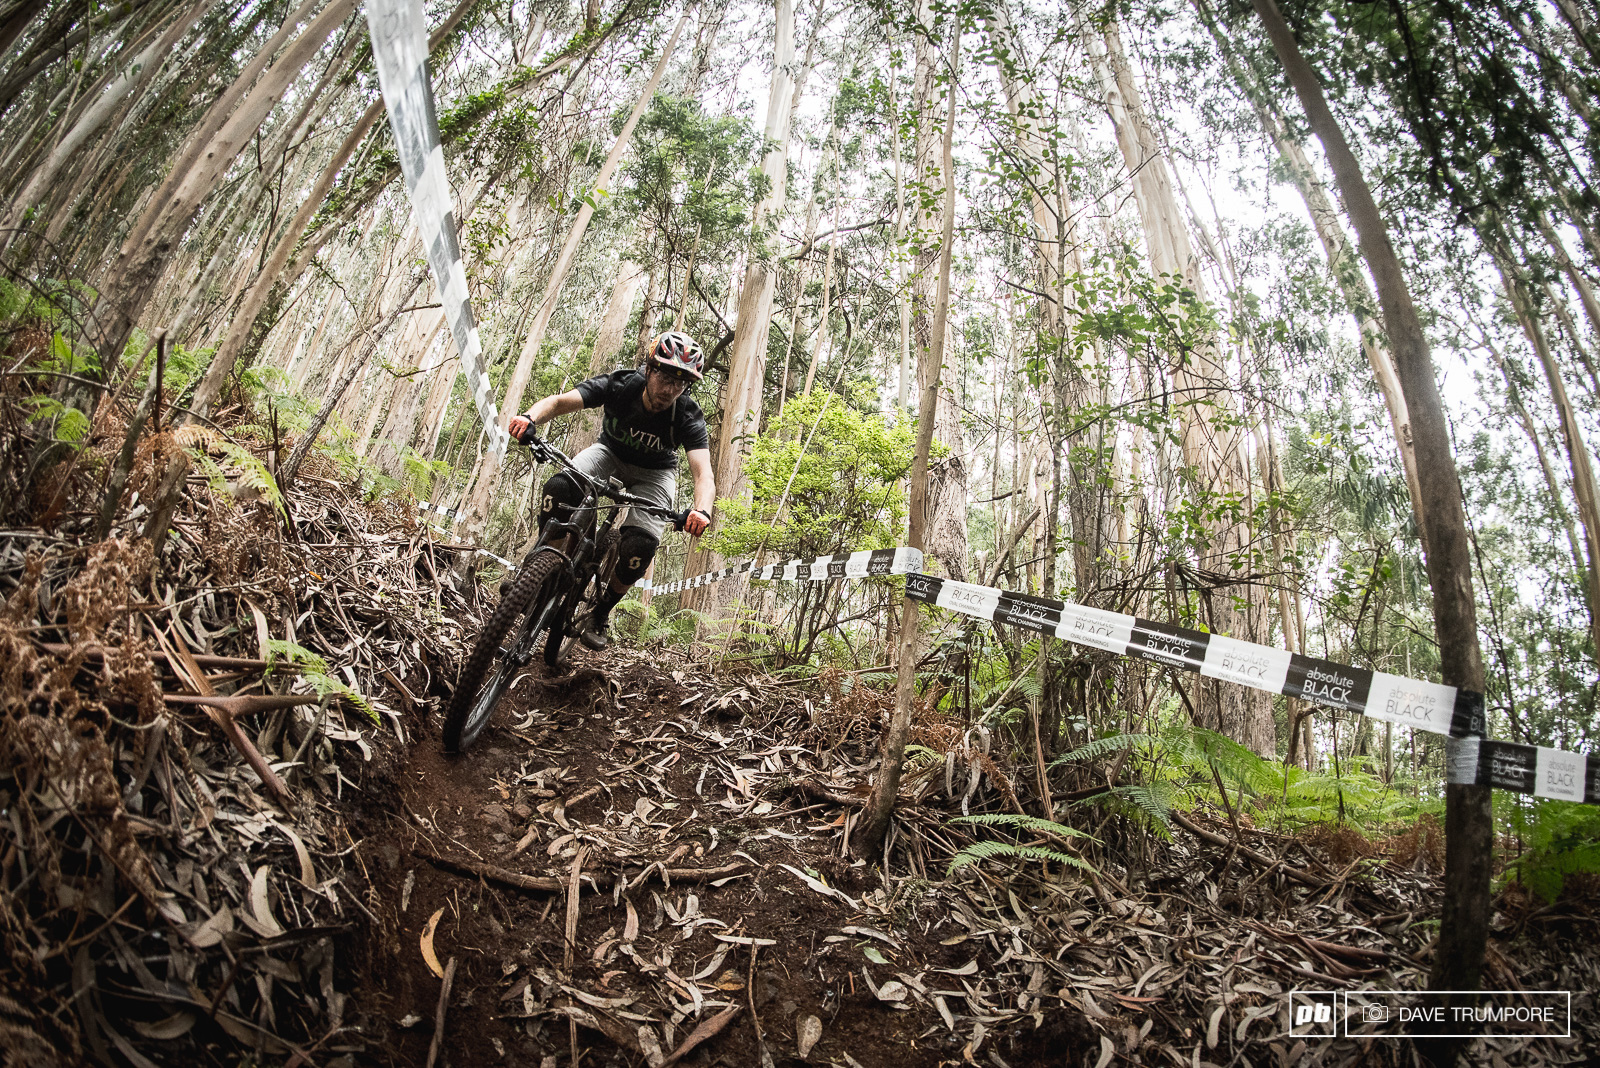 Stage 4 is a super flow natural affair through some big trees and loamy dirt.